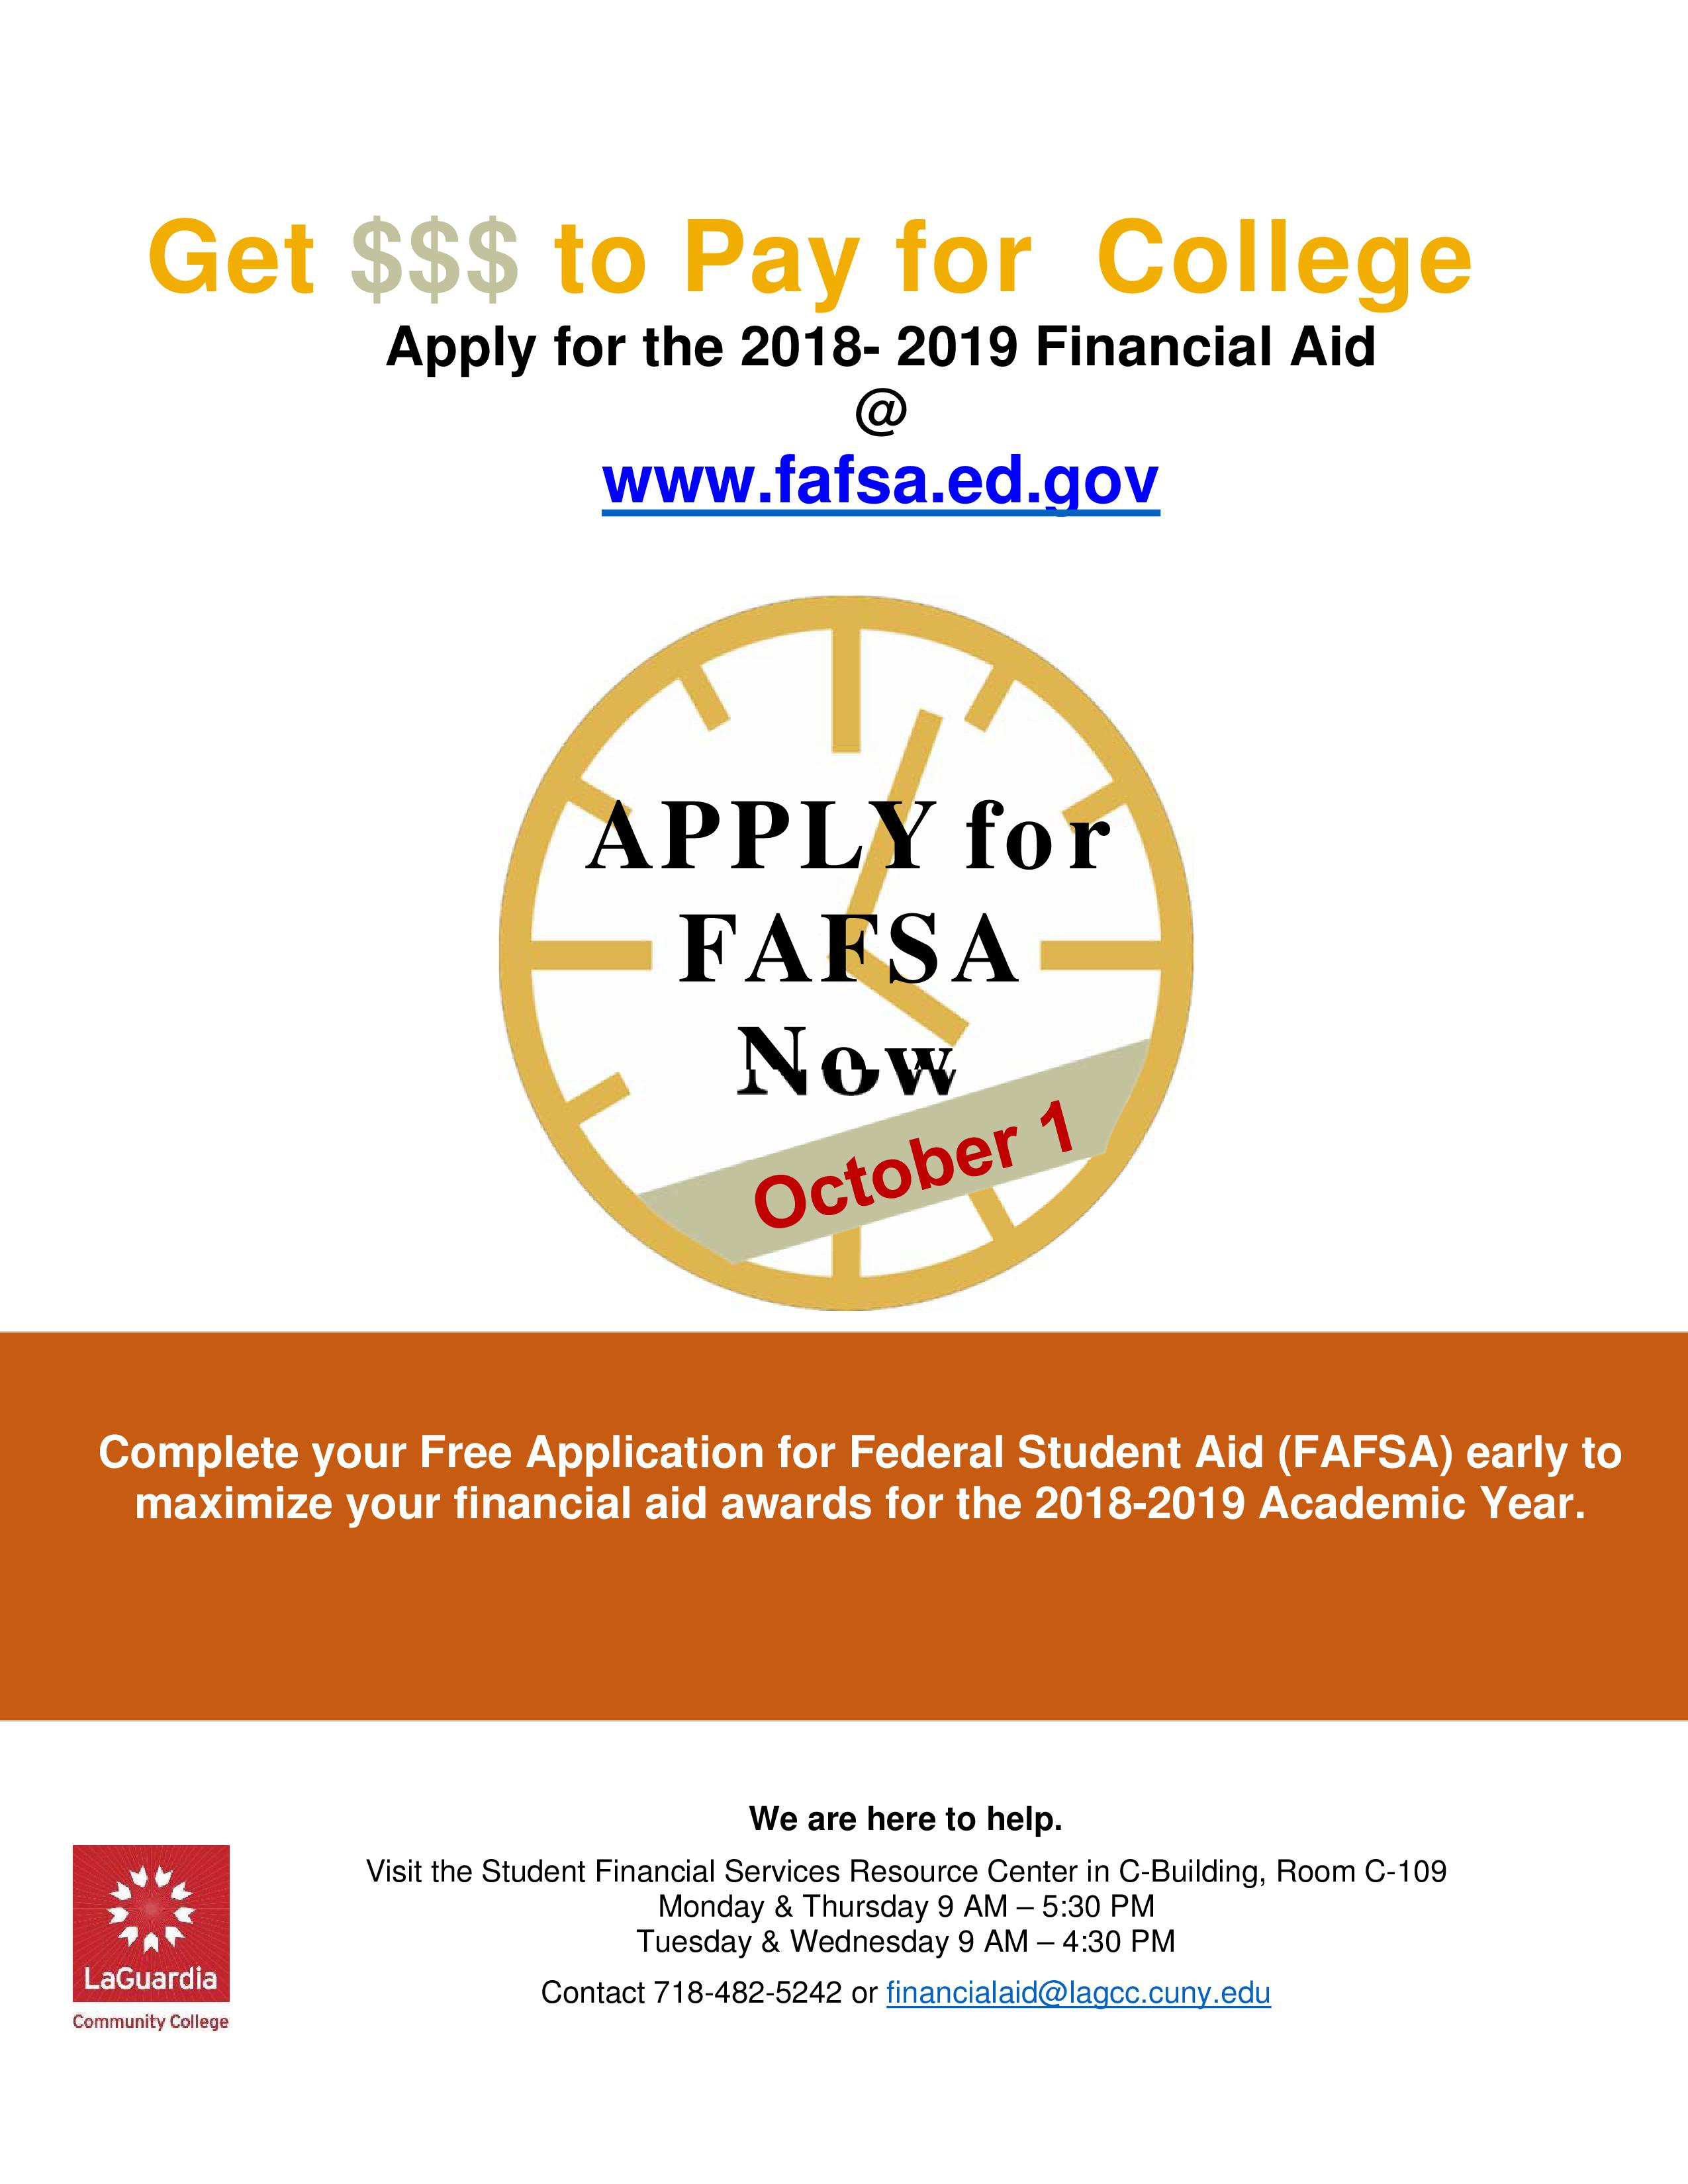 Apply for 2018-2019 Financial Aid